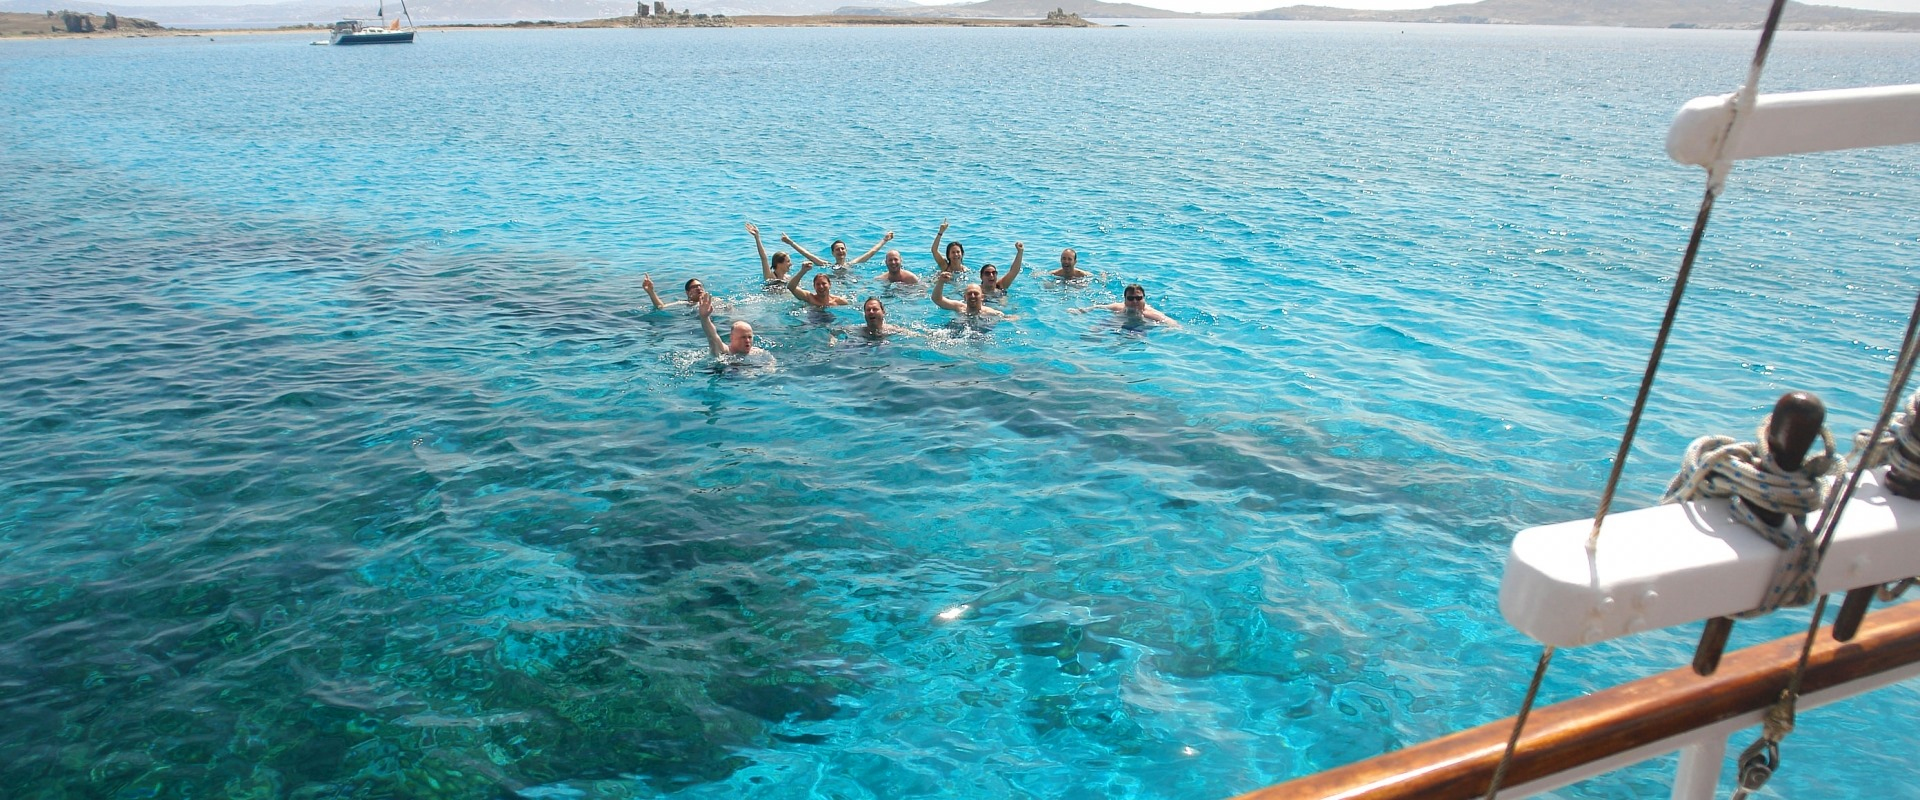 Rhenia & Delos Cruise from Mykonos | Boat Tour - Book at the best price